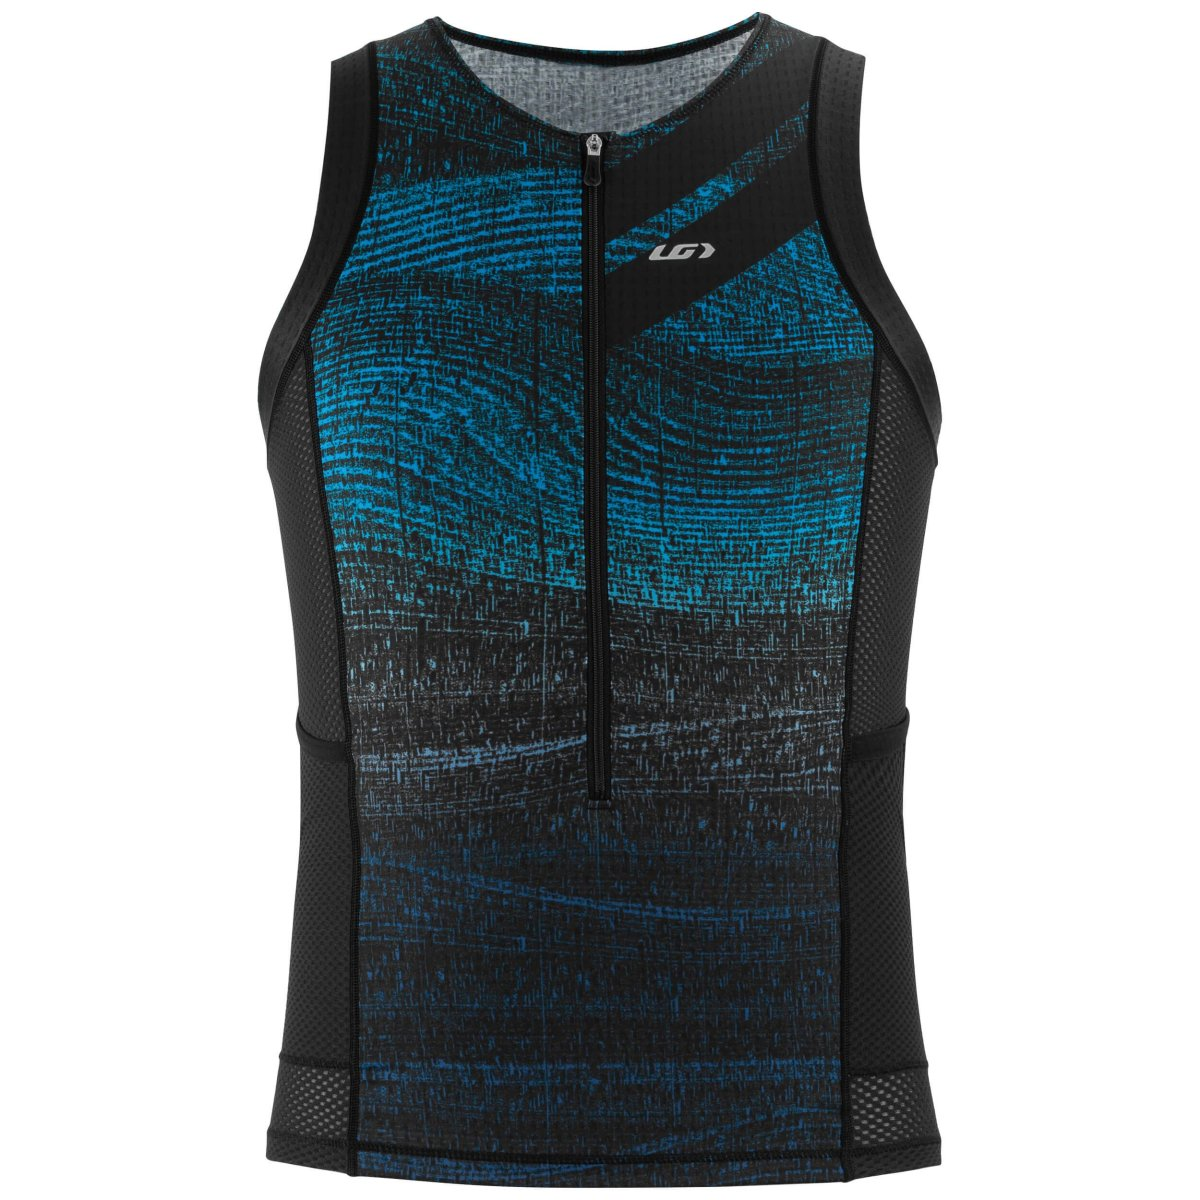 Футболка Garneau Vent Tri Sleeveless Top черно-синяя 1042097 8AA M